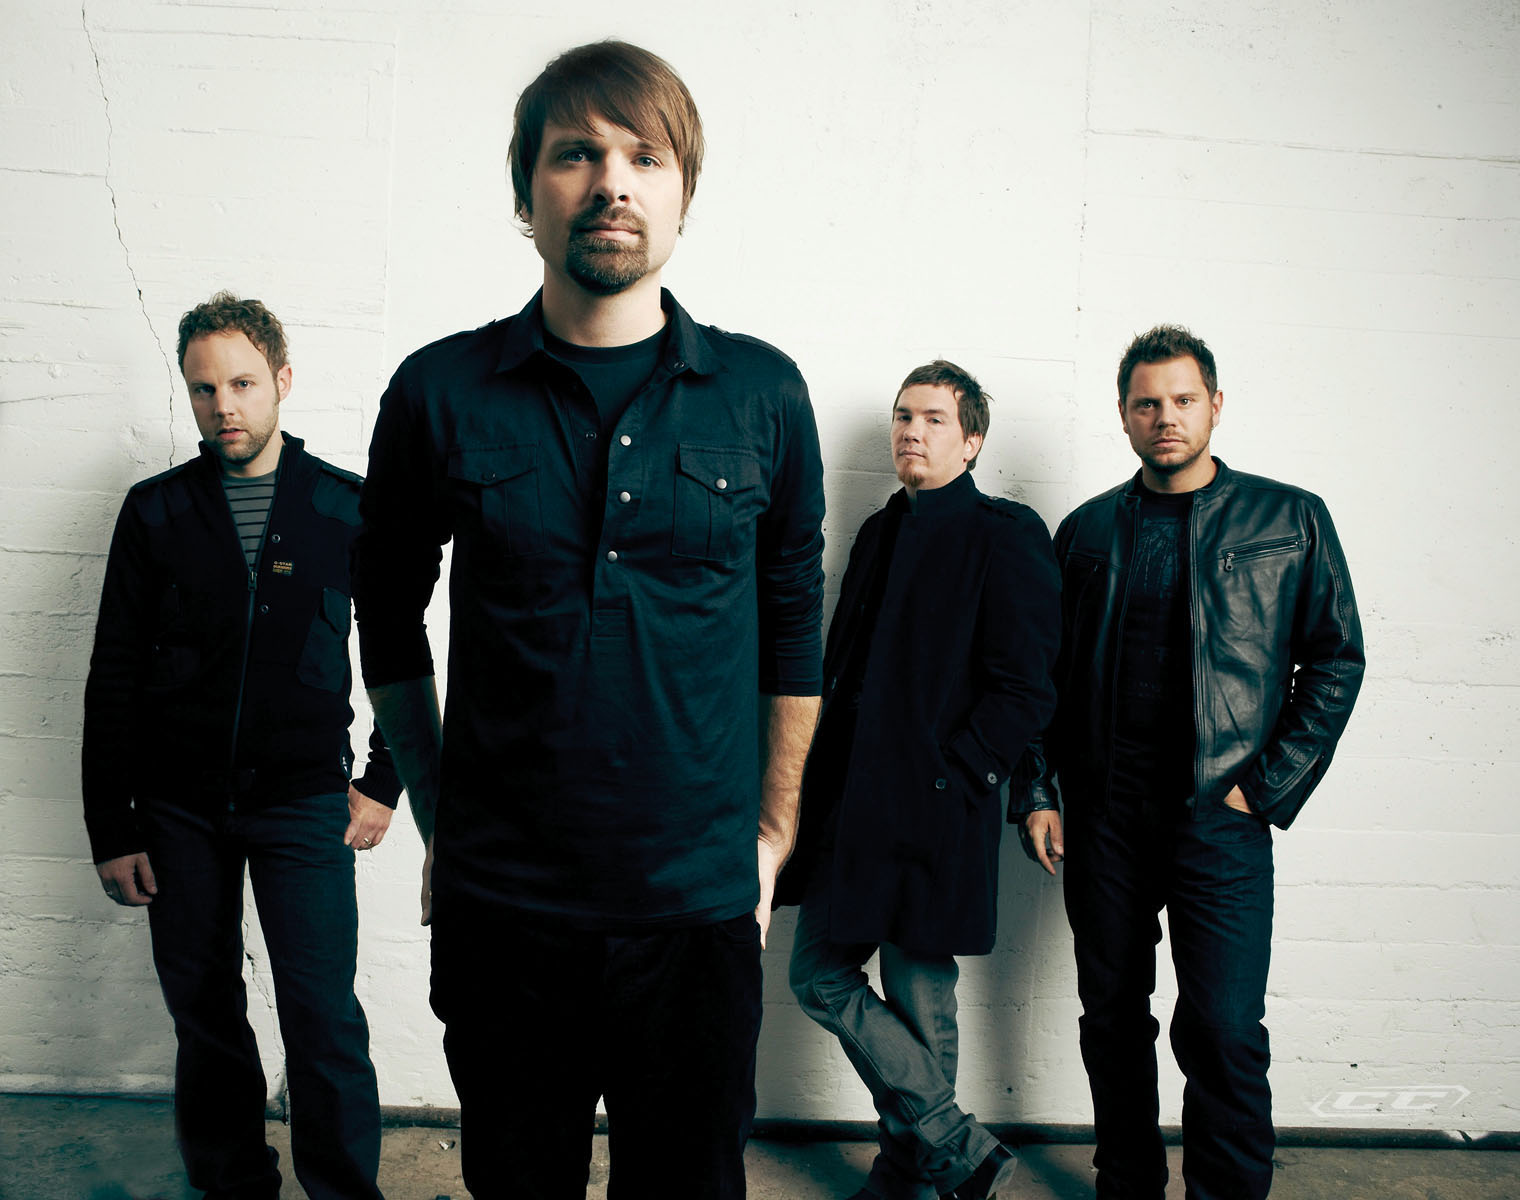 Third Day - Miracle 2012 biography and history